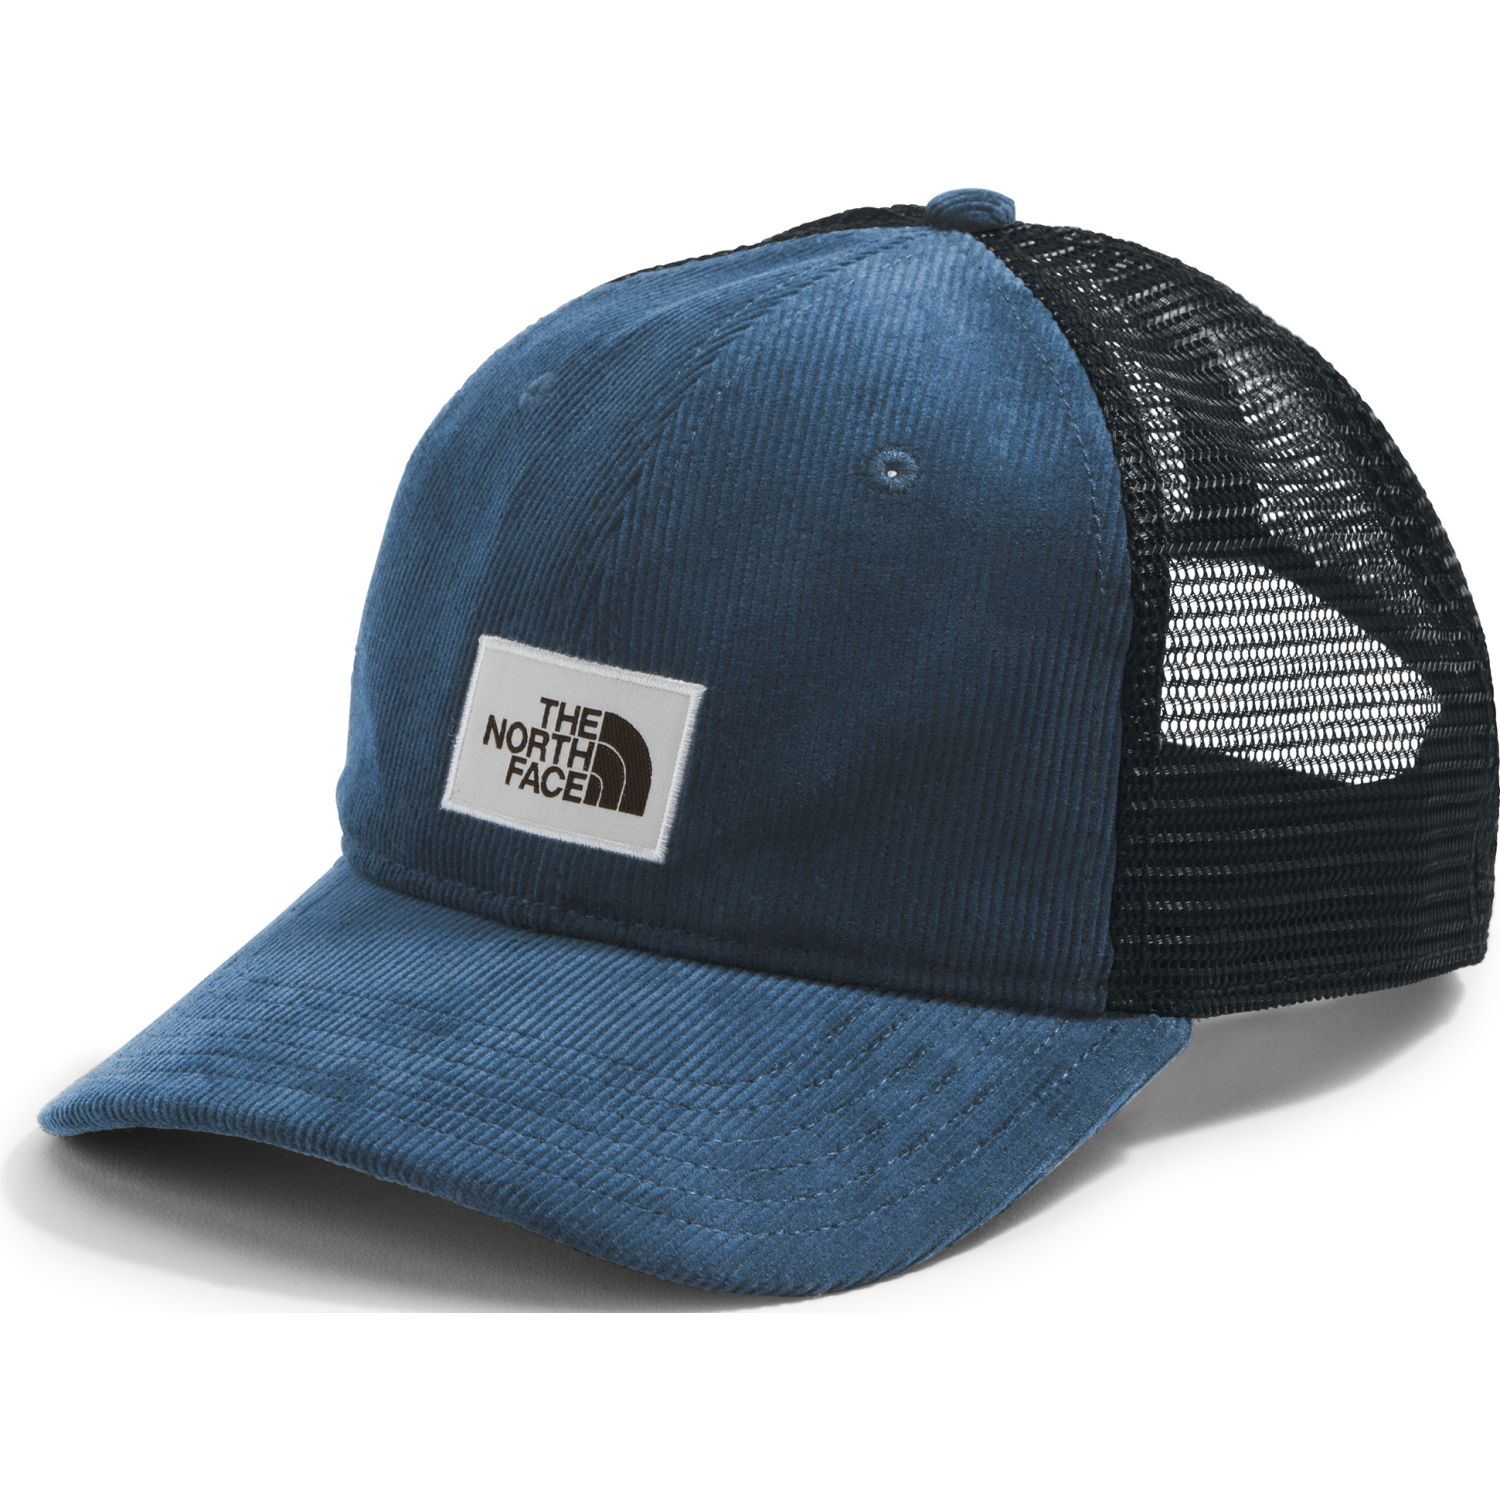 The North Face UNSTRUCTURED TRUCKER Azul Gorras de béisbol